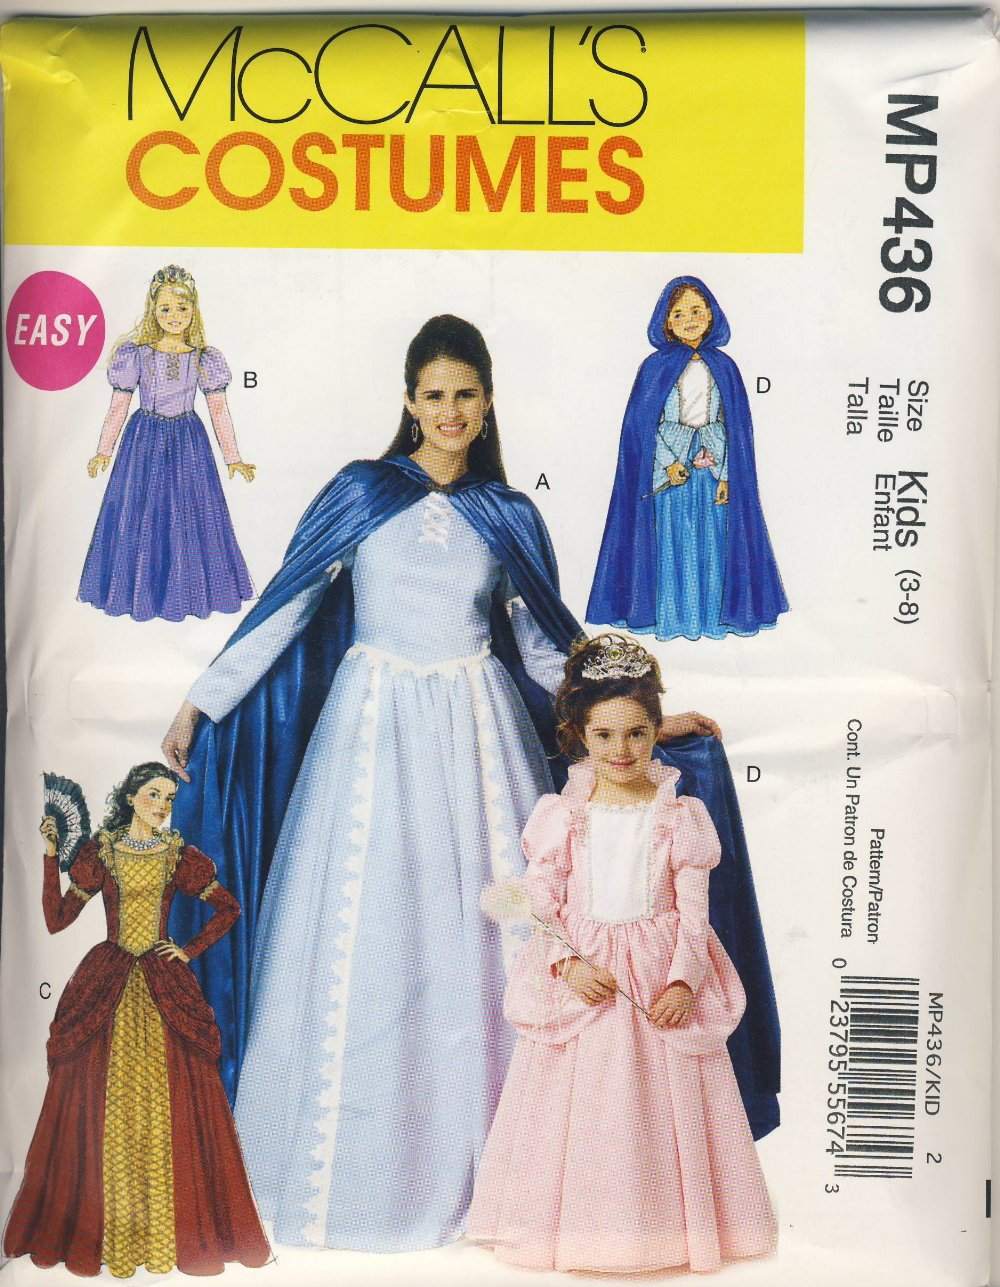 McCall Sewing Pattern MP436 (M6420) - Use to Make - Easy Kids Renaissance / Medieval / Princess Costumes - Sizes 3-8 by McCall McCall Pattern Co.